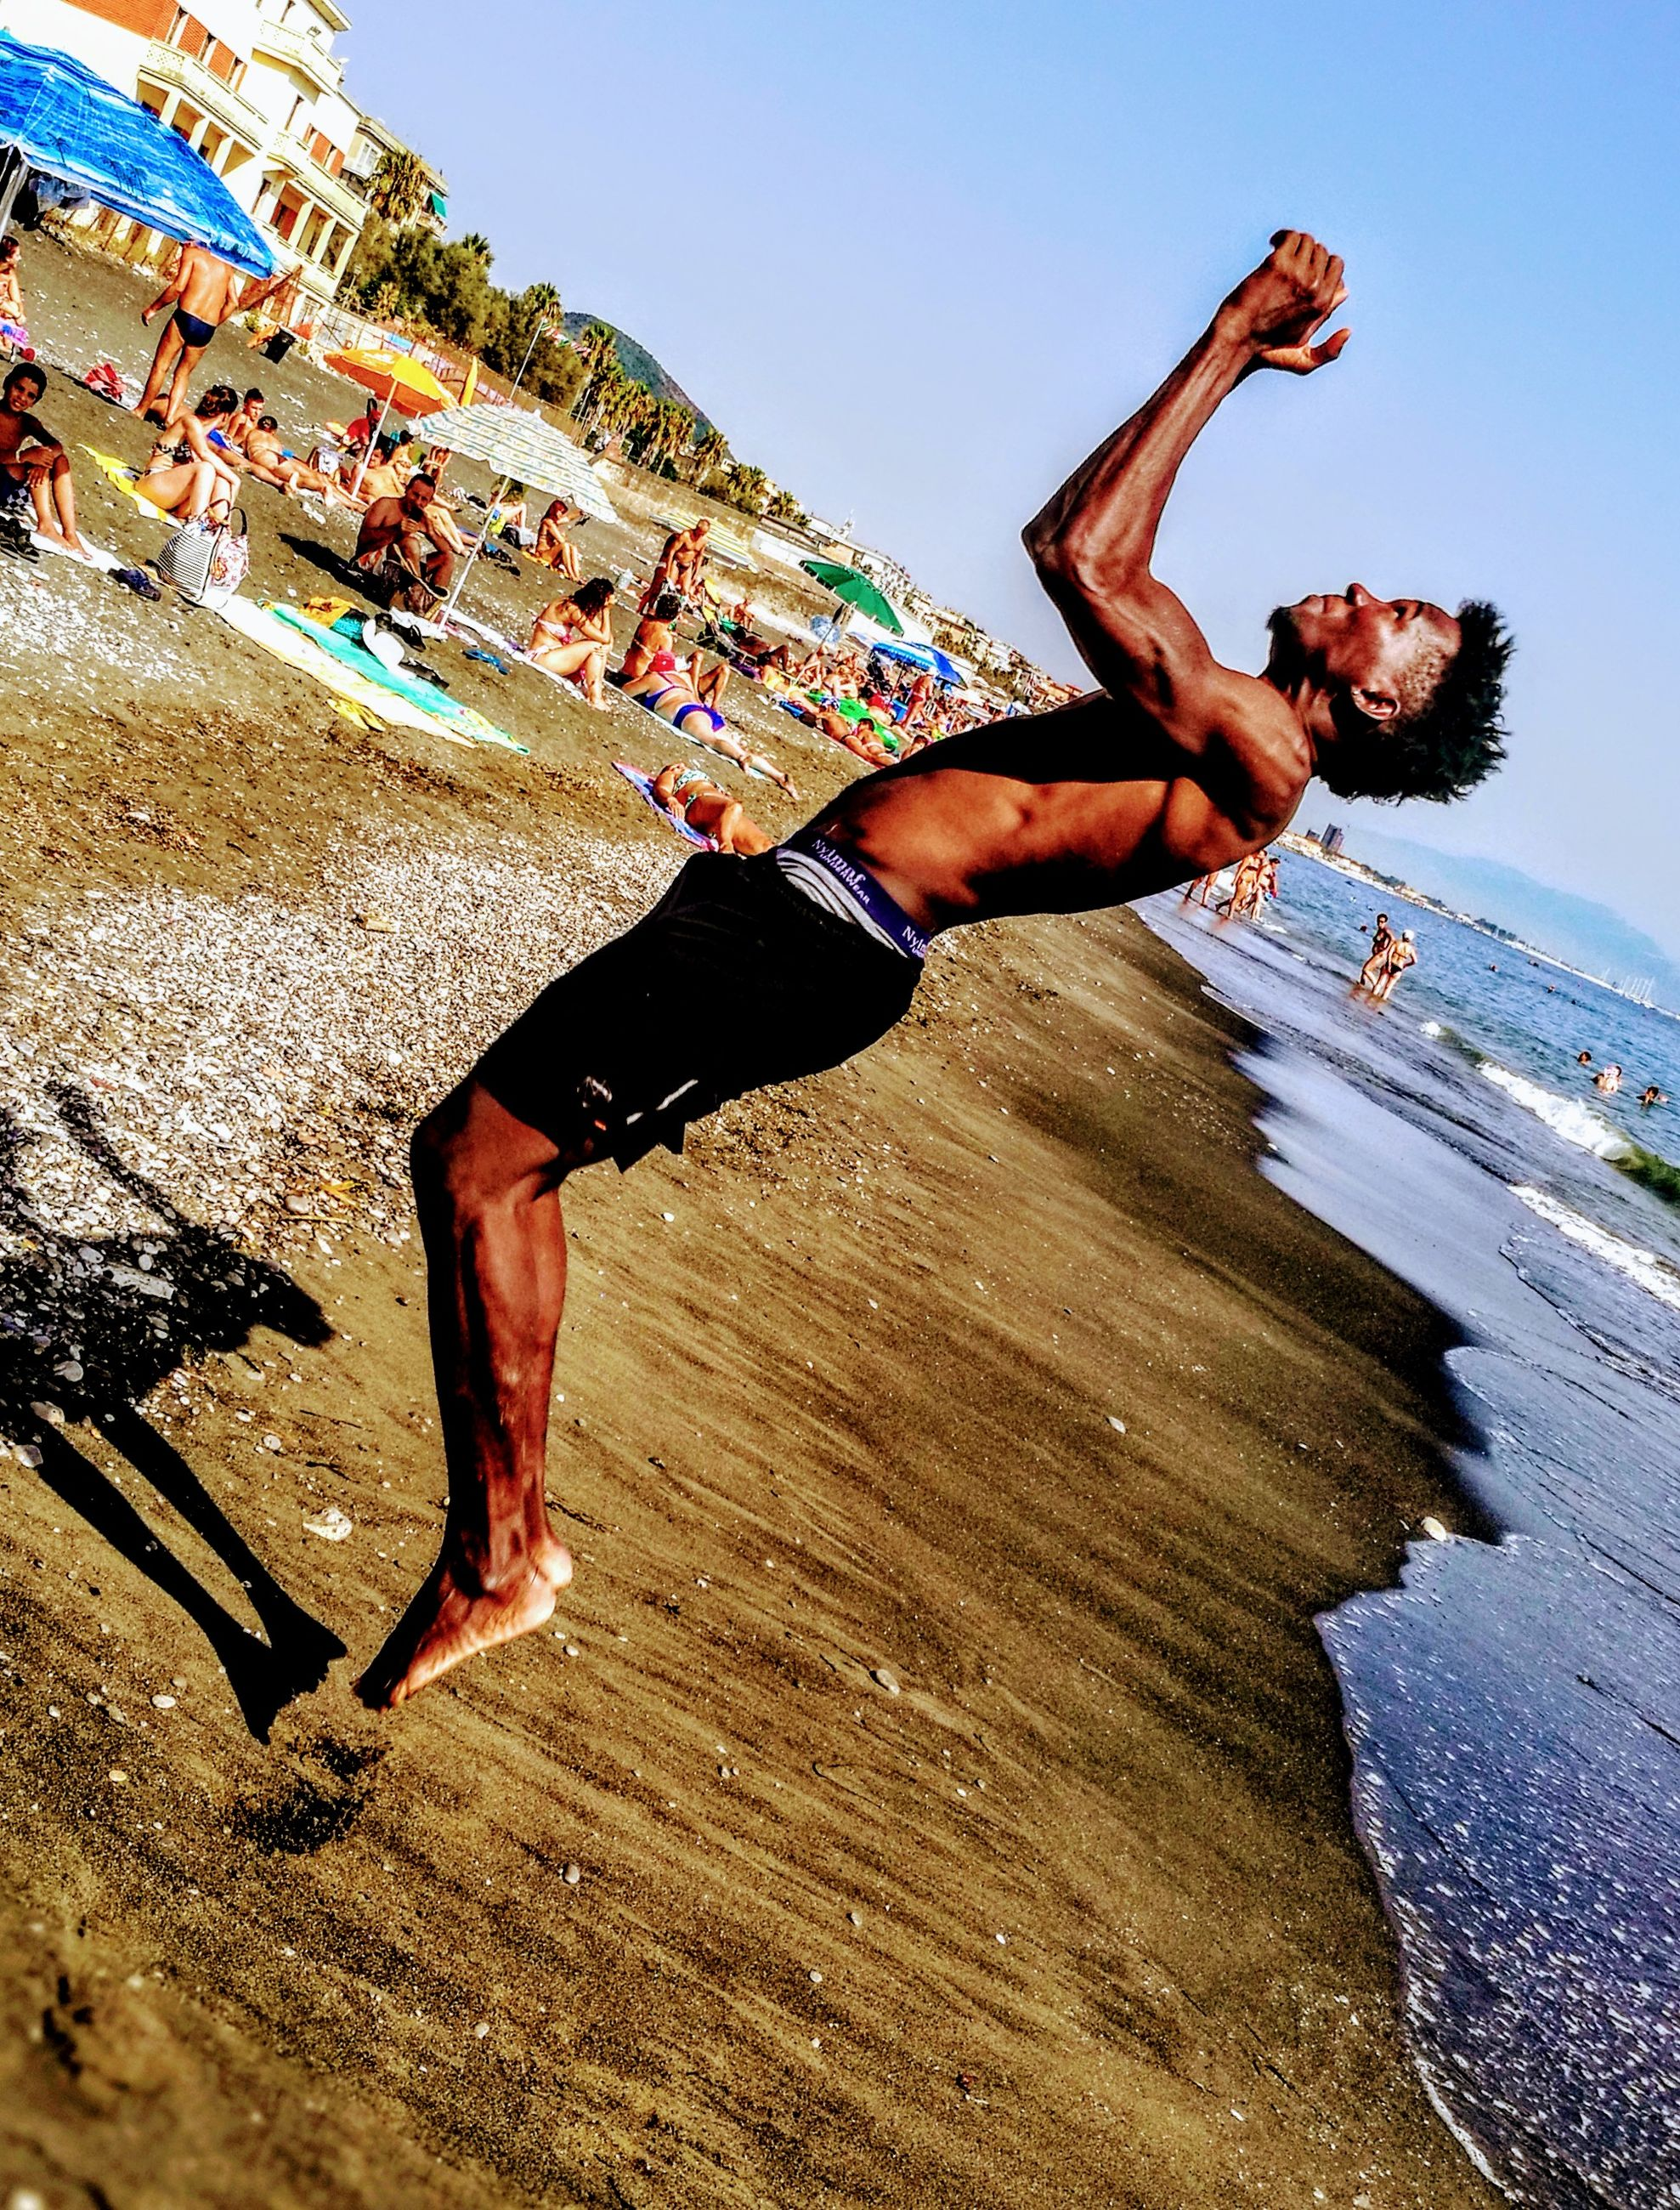 shirtless, real people, men, day, leisure activity, fun, lifestyles, outdoors, full length, beach, one person, sky, young adult, nature, people